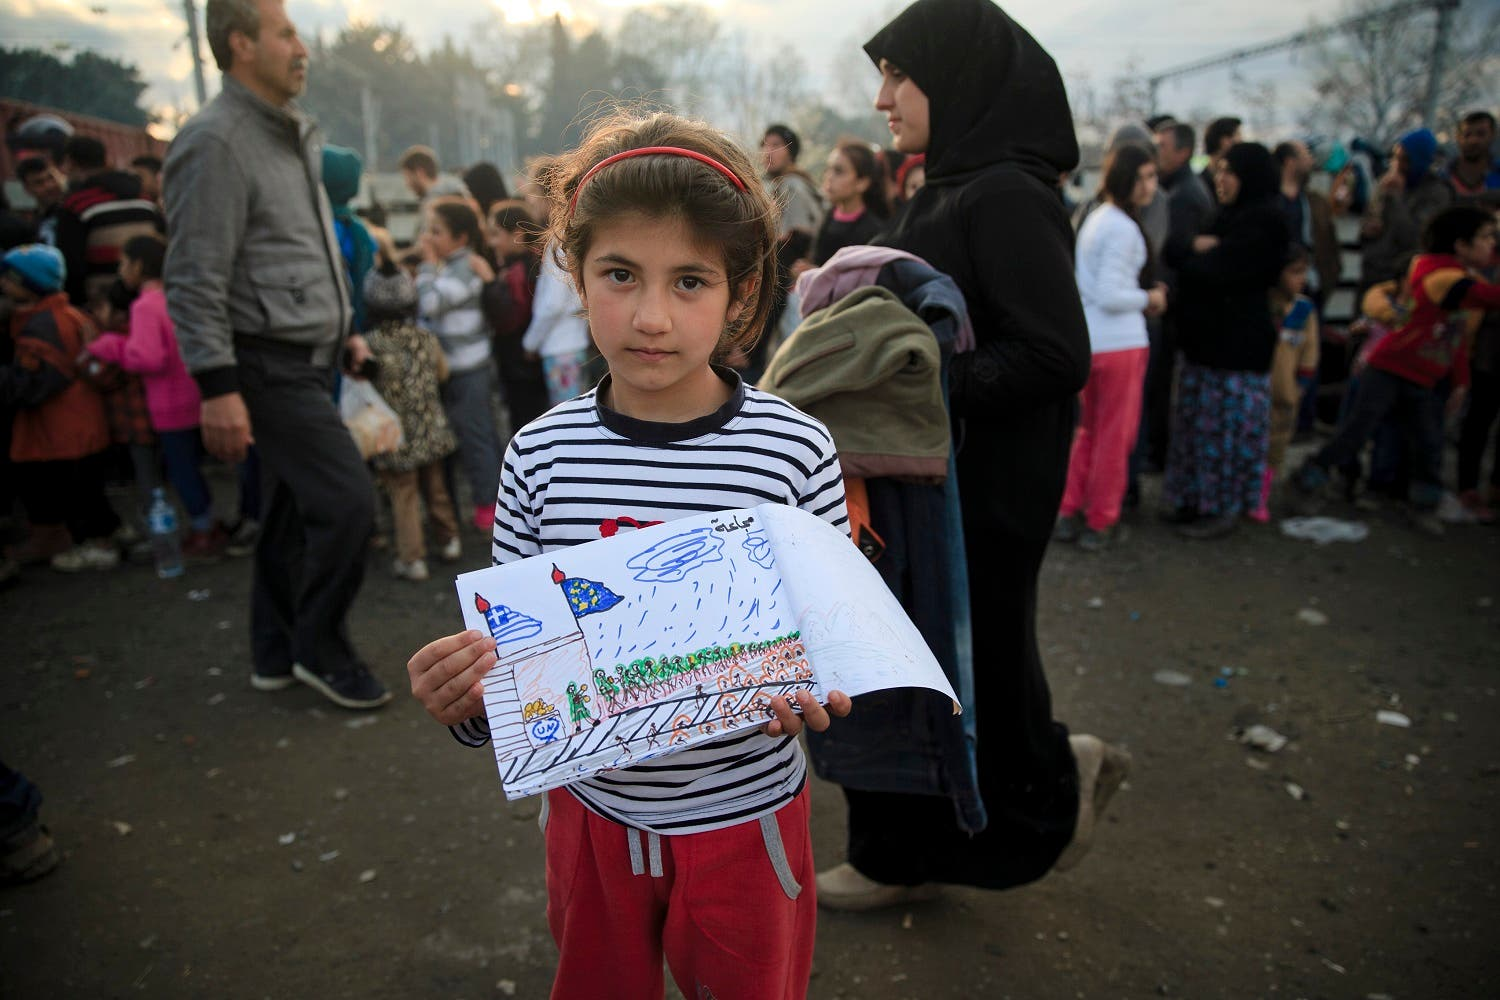 Shaharzad Hassan, 8 year-old from the Syrian city of Aleppo poses with a drawing she made as people wait in line for food rations at the northern Greek border station of Idomeni, Friday, March 11, 2016. At an overcrowded refugee camp on the Greek-Macedonian border, 8-year-old Shaharzad Hassan draws pictures of the harrowing events in her life over the past 18 months: Pictures of death in her home town of Aleppo, Syria, and her perilous journey to Europe. The title, of this drawing seen at top right reads